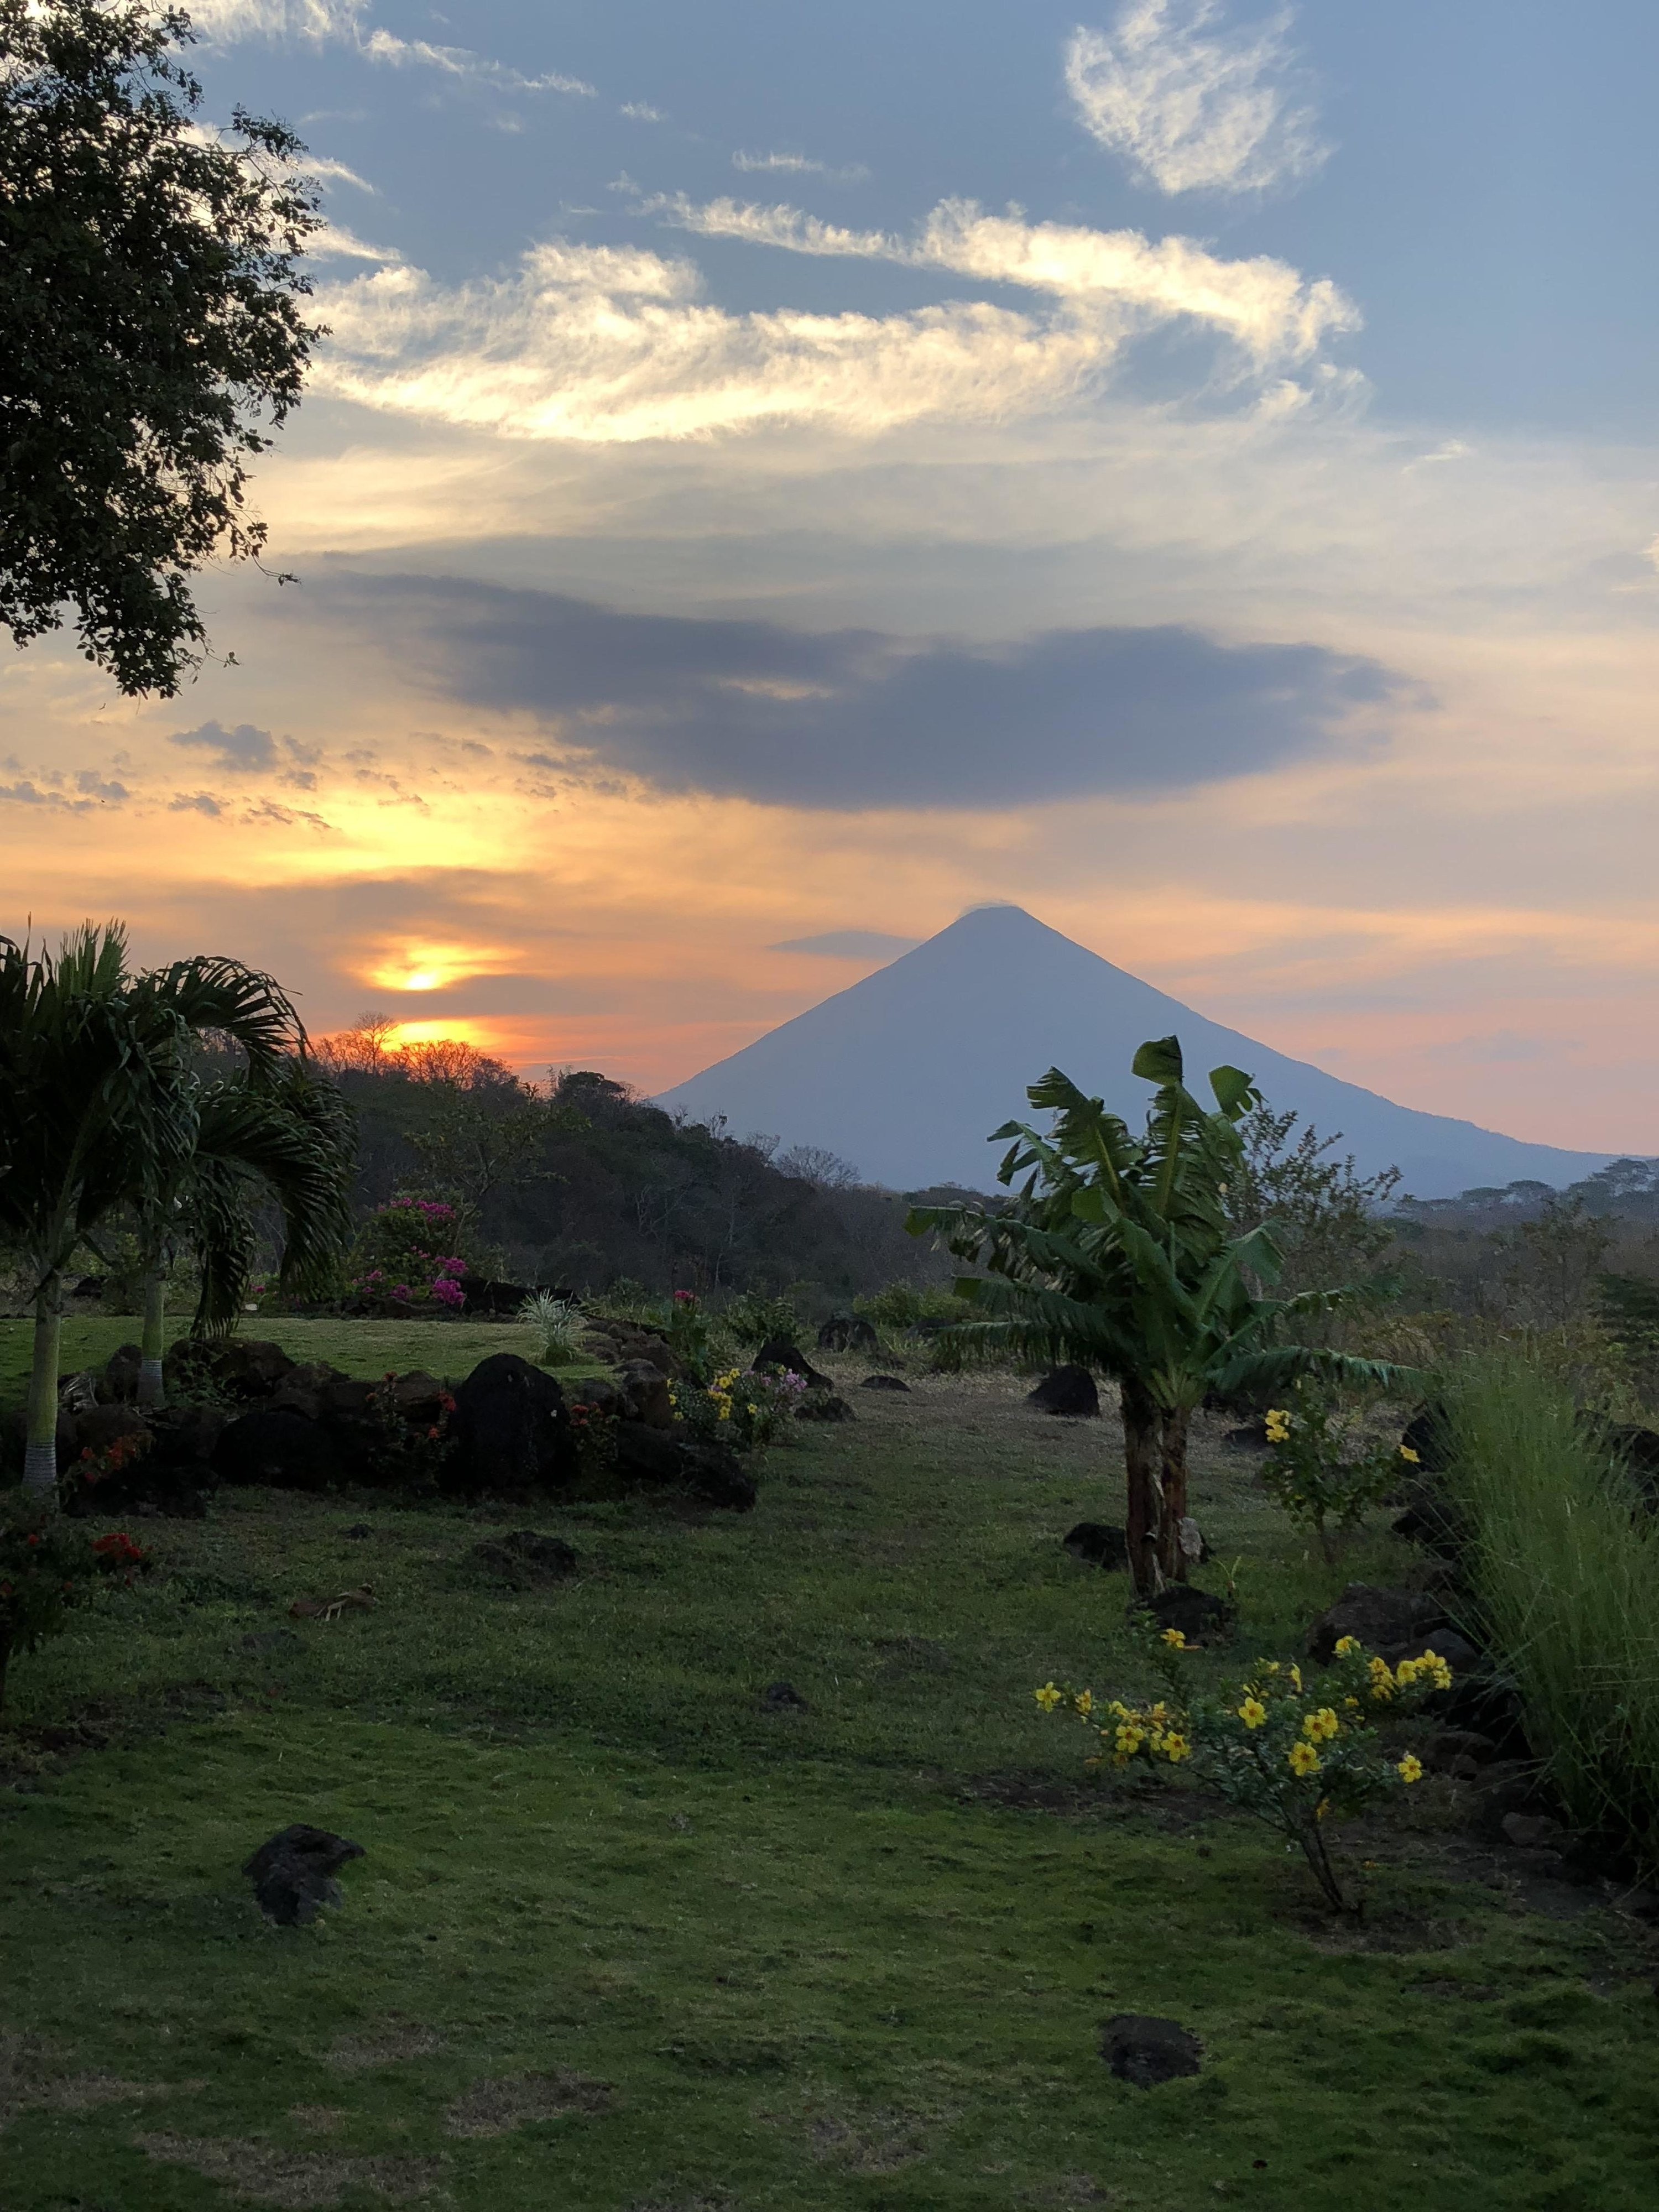 A view of Volcán Concepcíon on Ometepe Island, Nicaragua